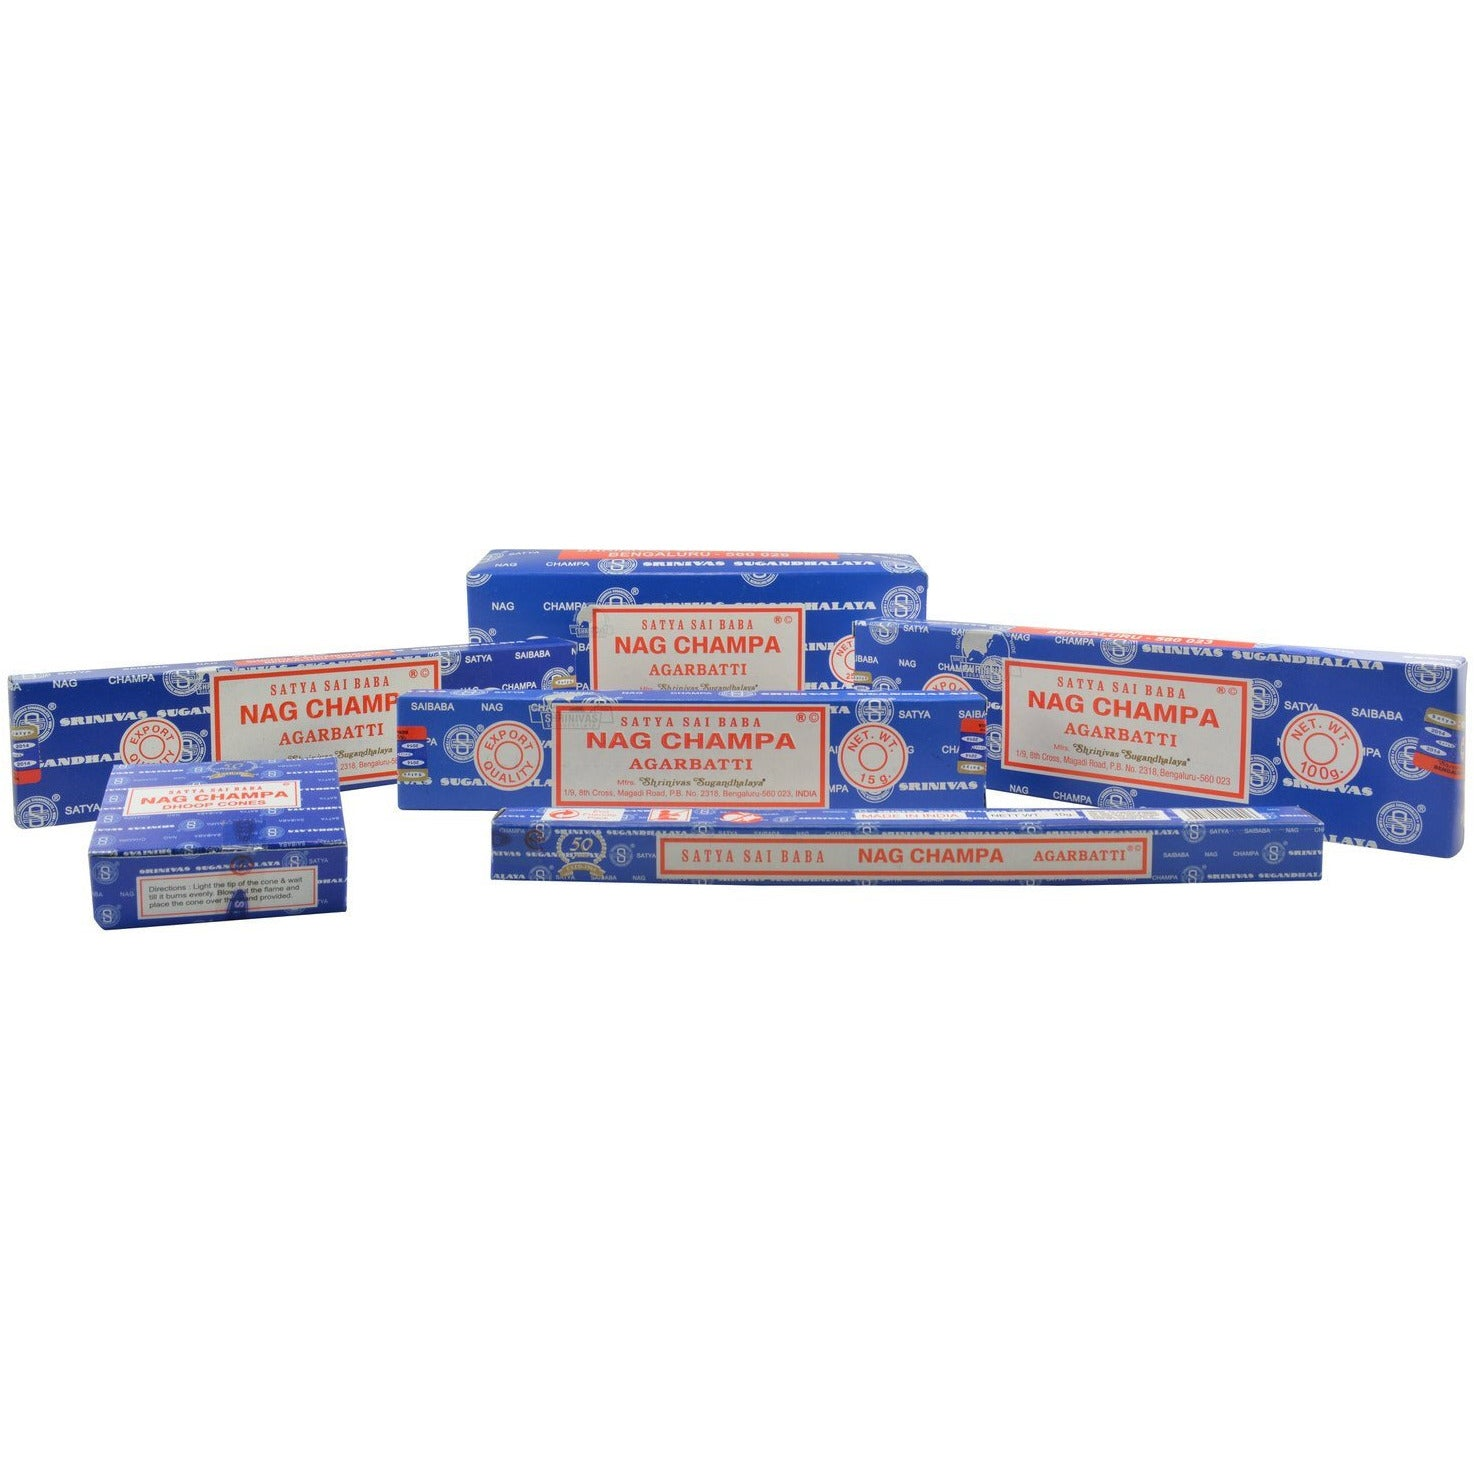 Authentic Nag Champa Incense Sticks East Meets West Usa